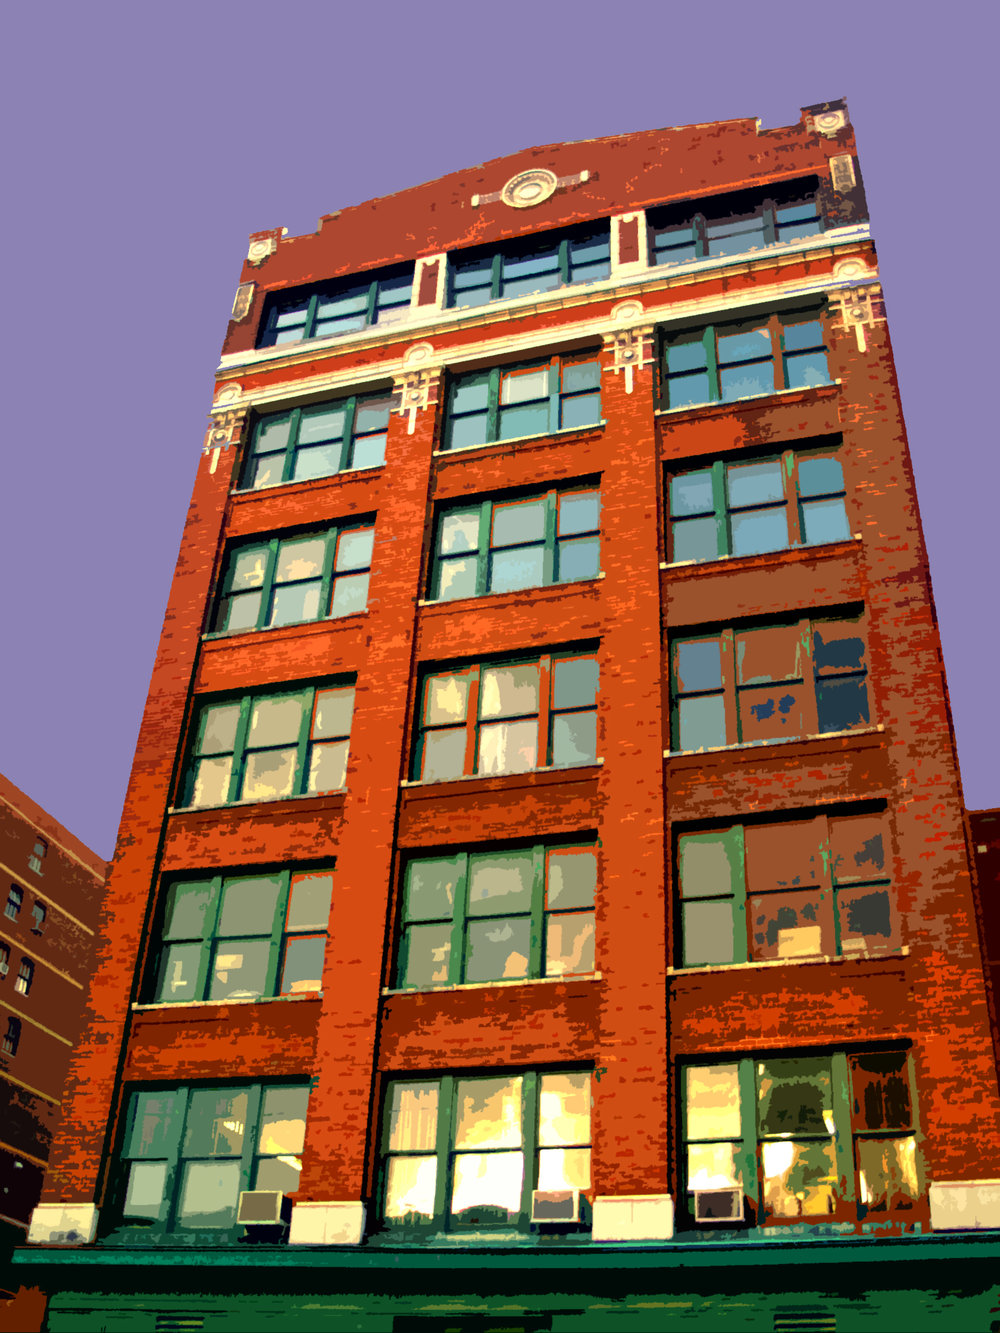 South Loop Warehouse, digitally enhanced photograph, 2005